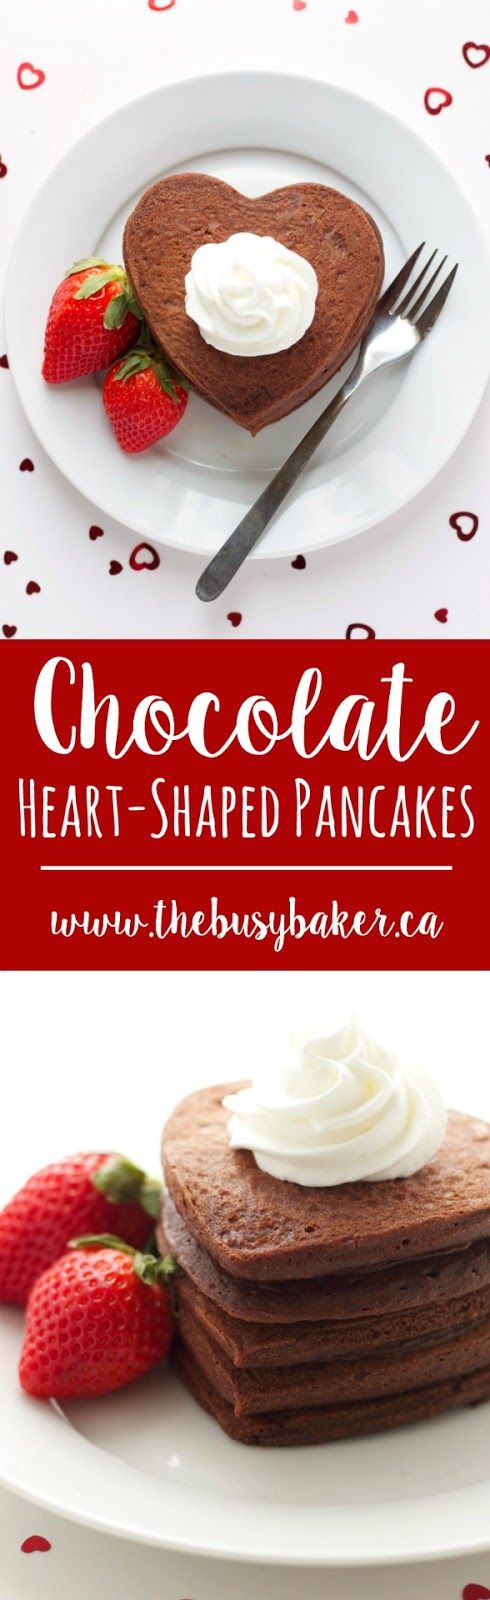 The cutest healthier Chocolate Heart-Shaped Pancakes from thebusybaker.ca! #sponsored #ad #CollectiveBias